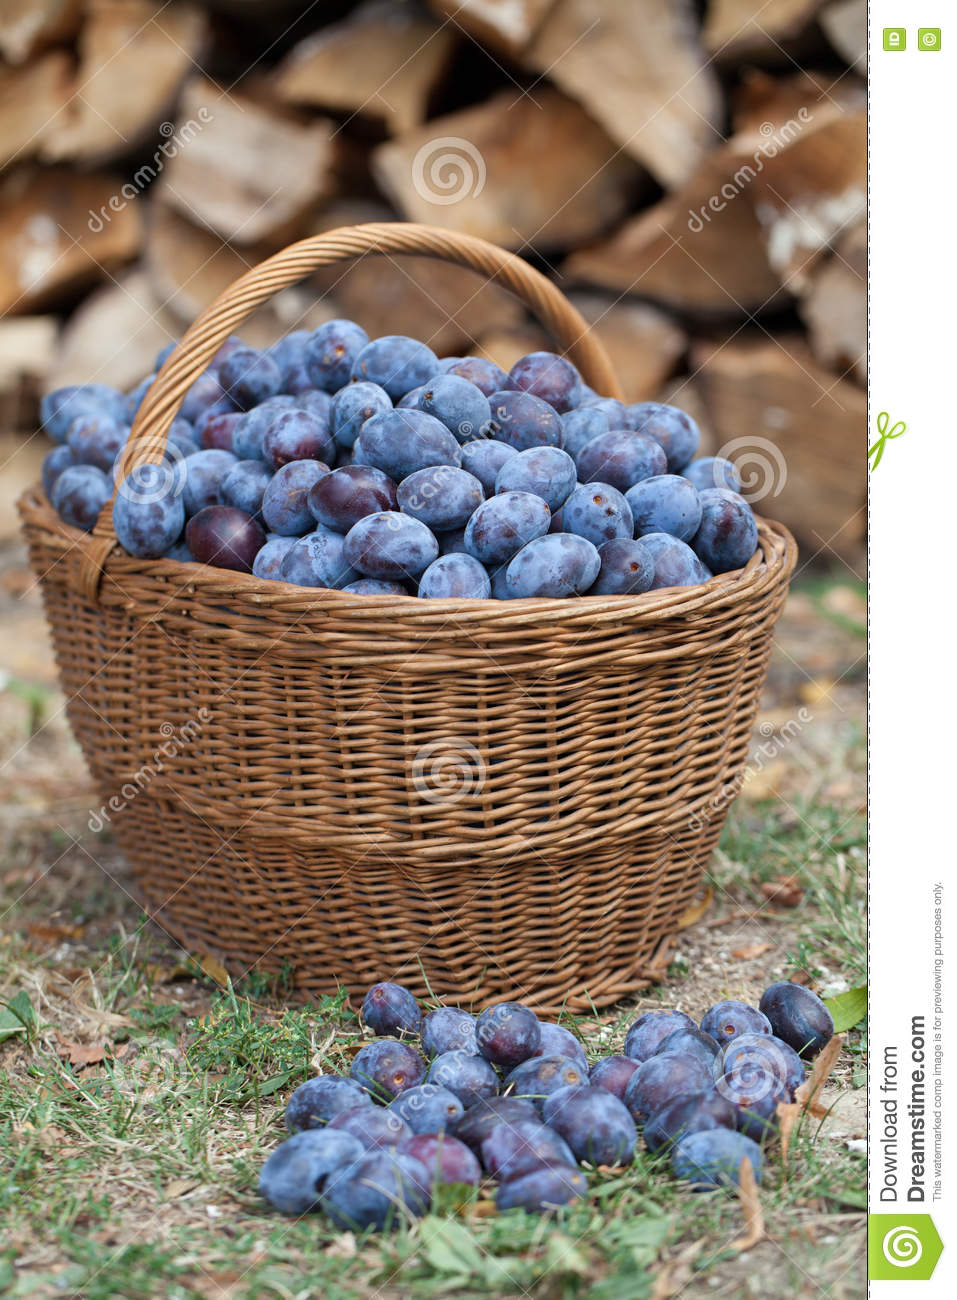 Download Plums in a basket stock photo. Image of large, healthy - 71217188